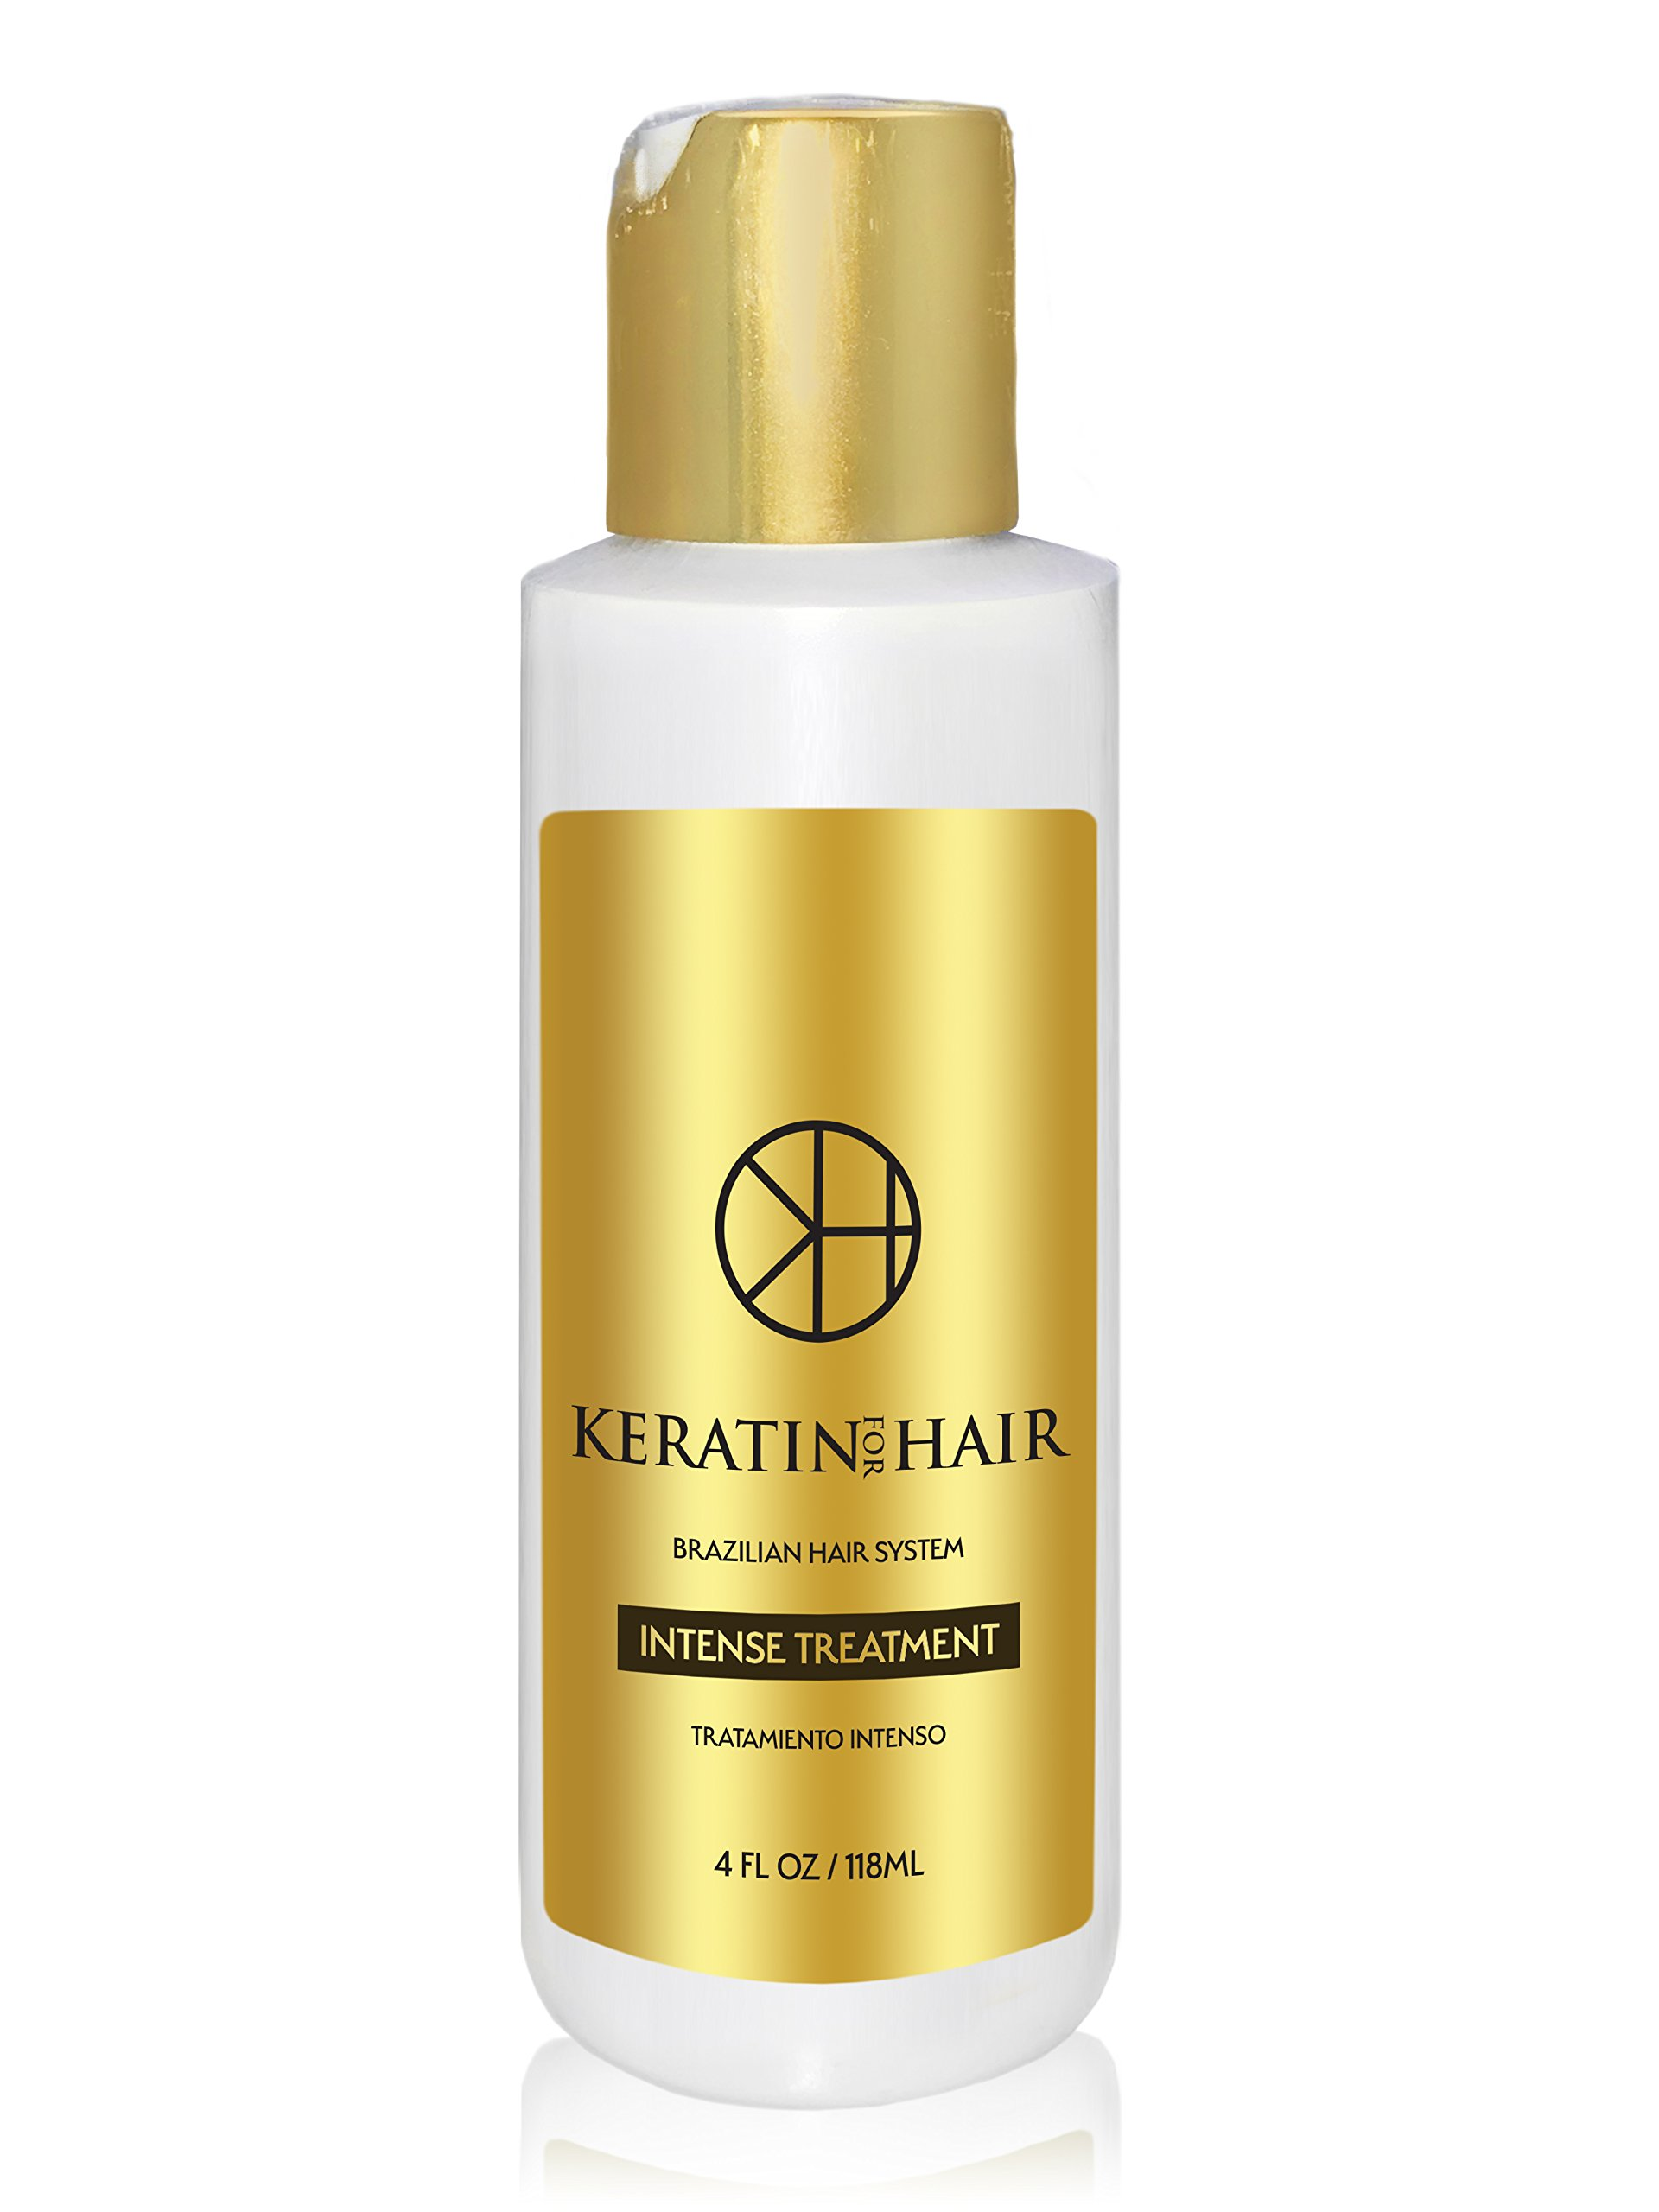 Brazilian Keratin Hair Treatment Professional Intense Smoothing Complex Blowout with Argan Oil New Formula & Fragrance By Keratin For Hair For all hair types Damage Frizzy Coarse Afro hair (4 fl oz)